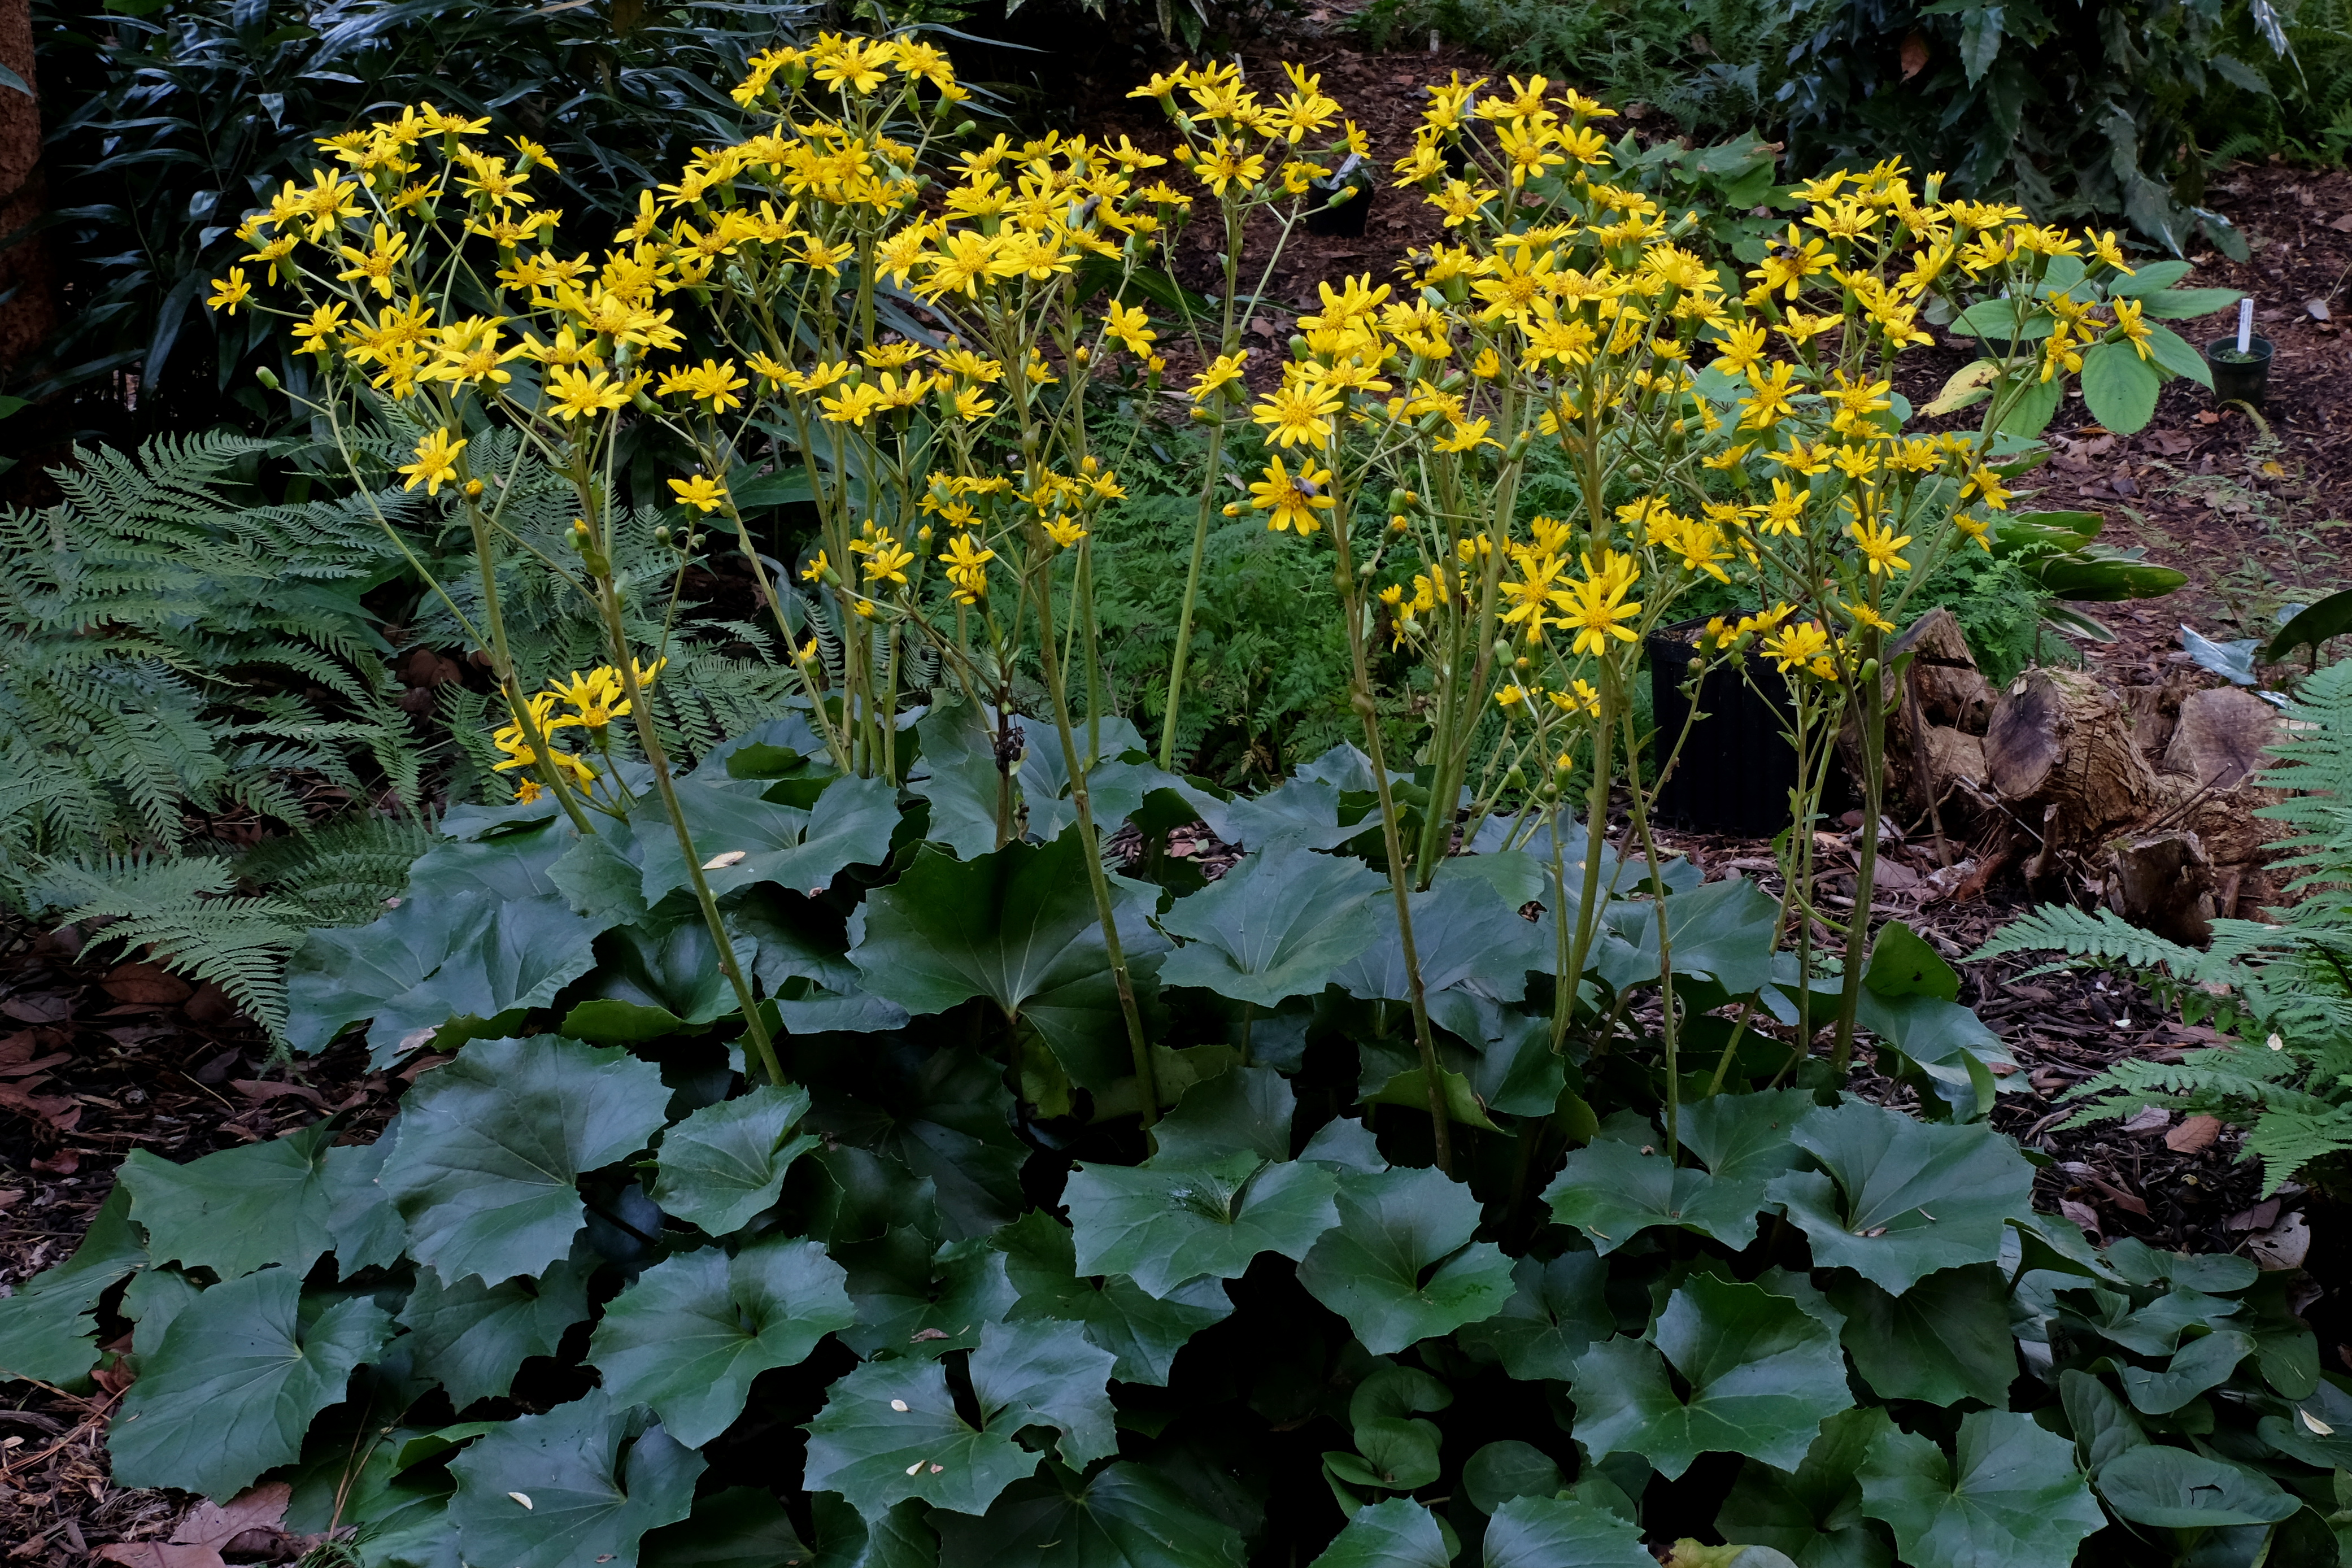 Farfugium japonicum 'Jagged Edge' @ JLBG; A form from Japan, shared by plantsman Hans Hansen with out a name, which was assigned by Plant Delights